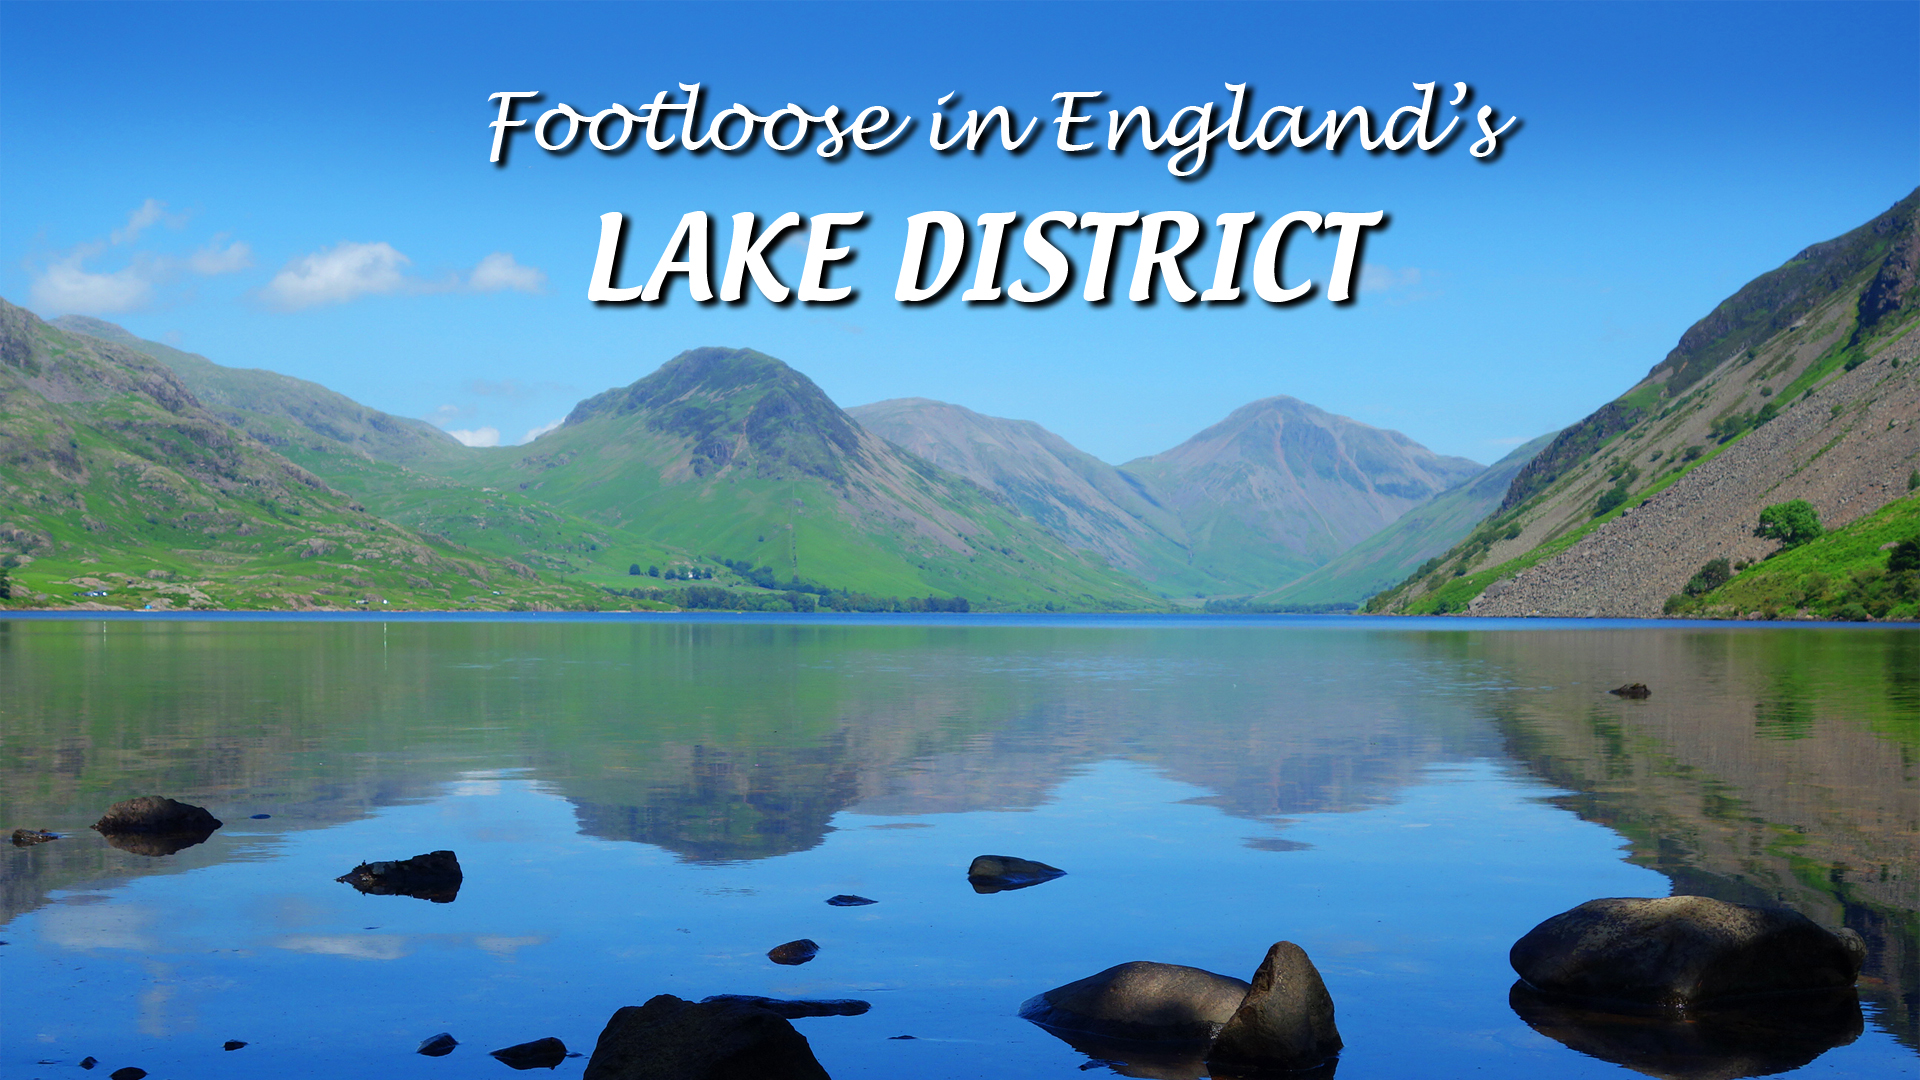 Footloose in England's Lake District